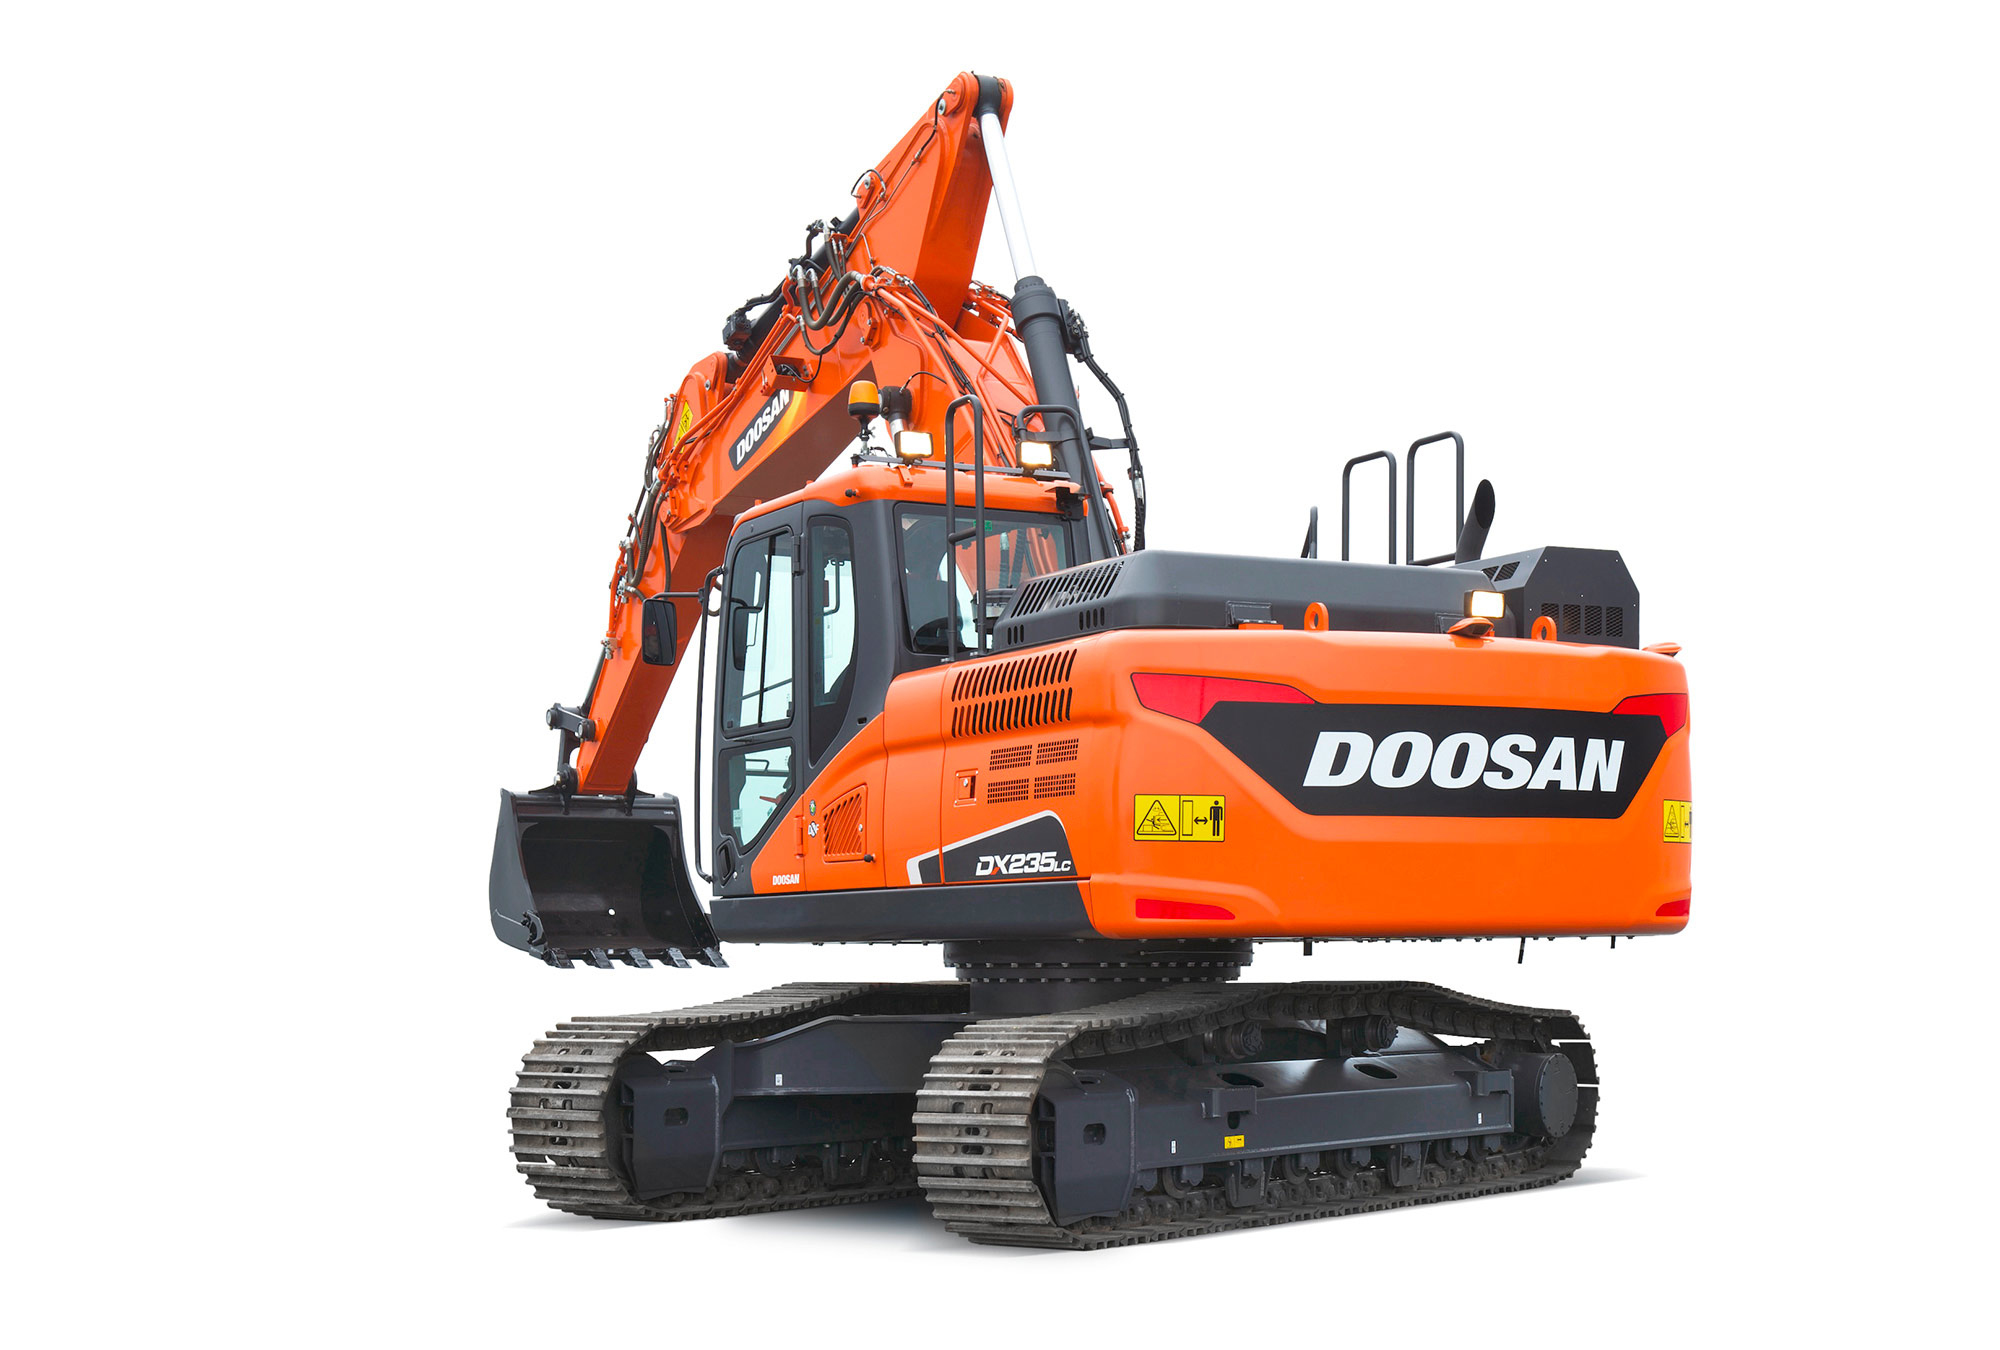 DX340LC-5